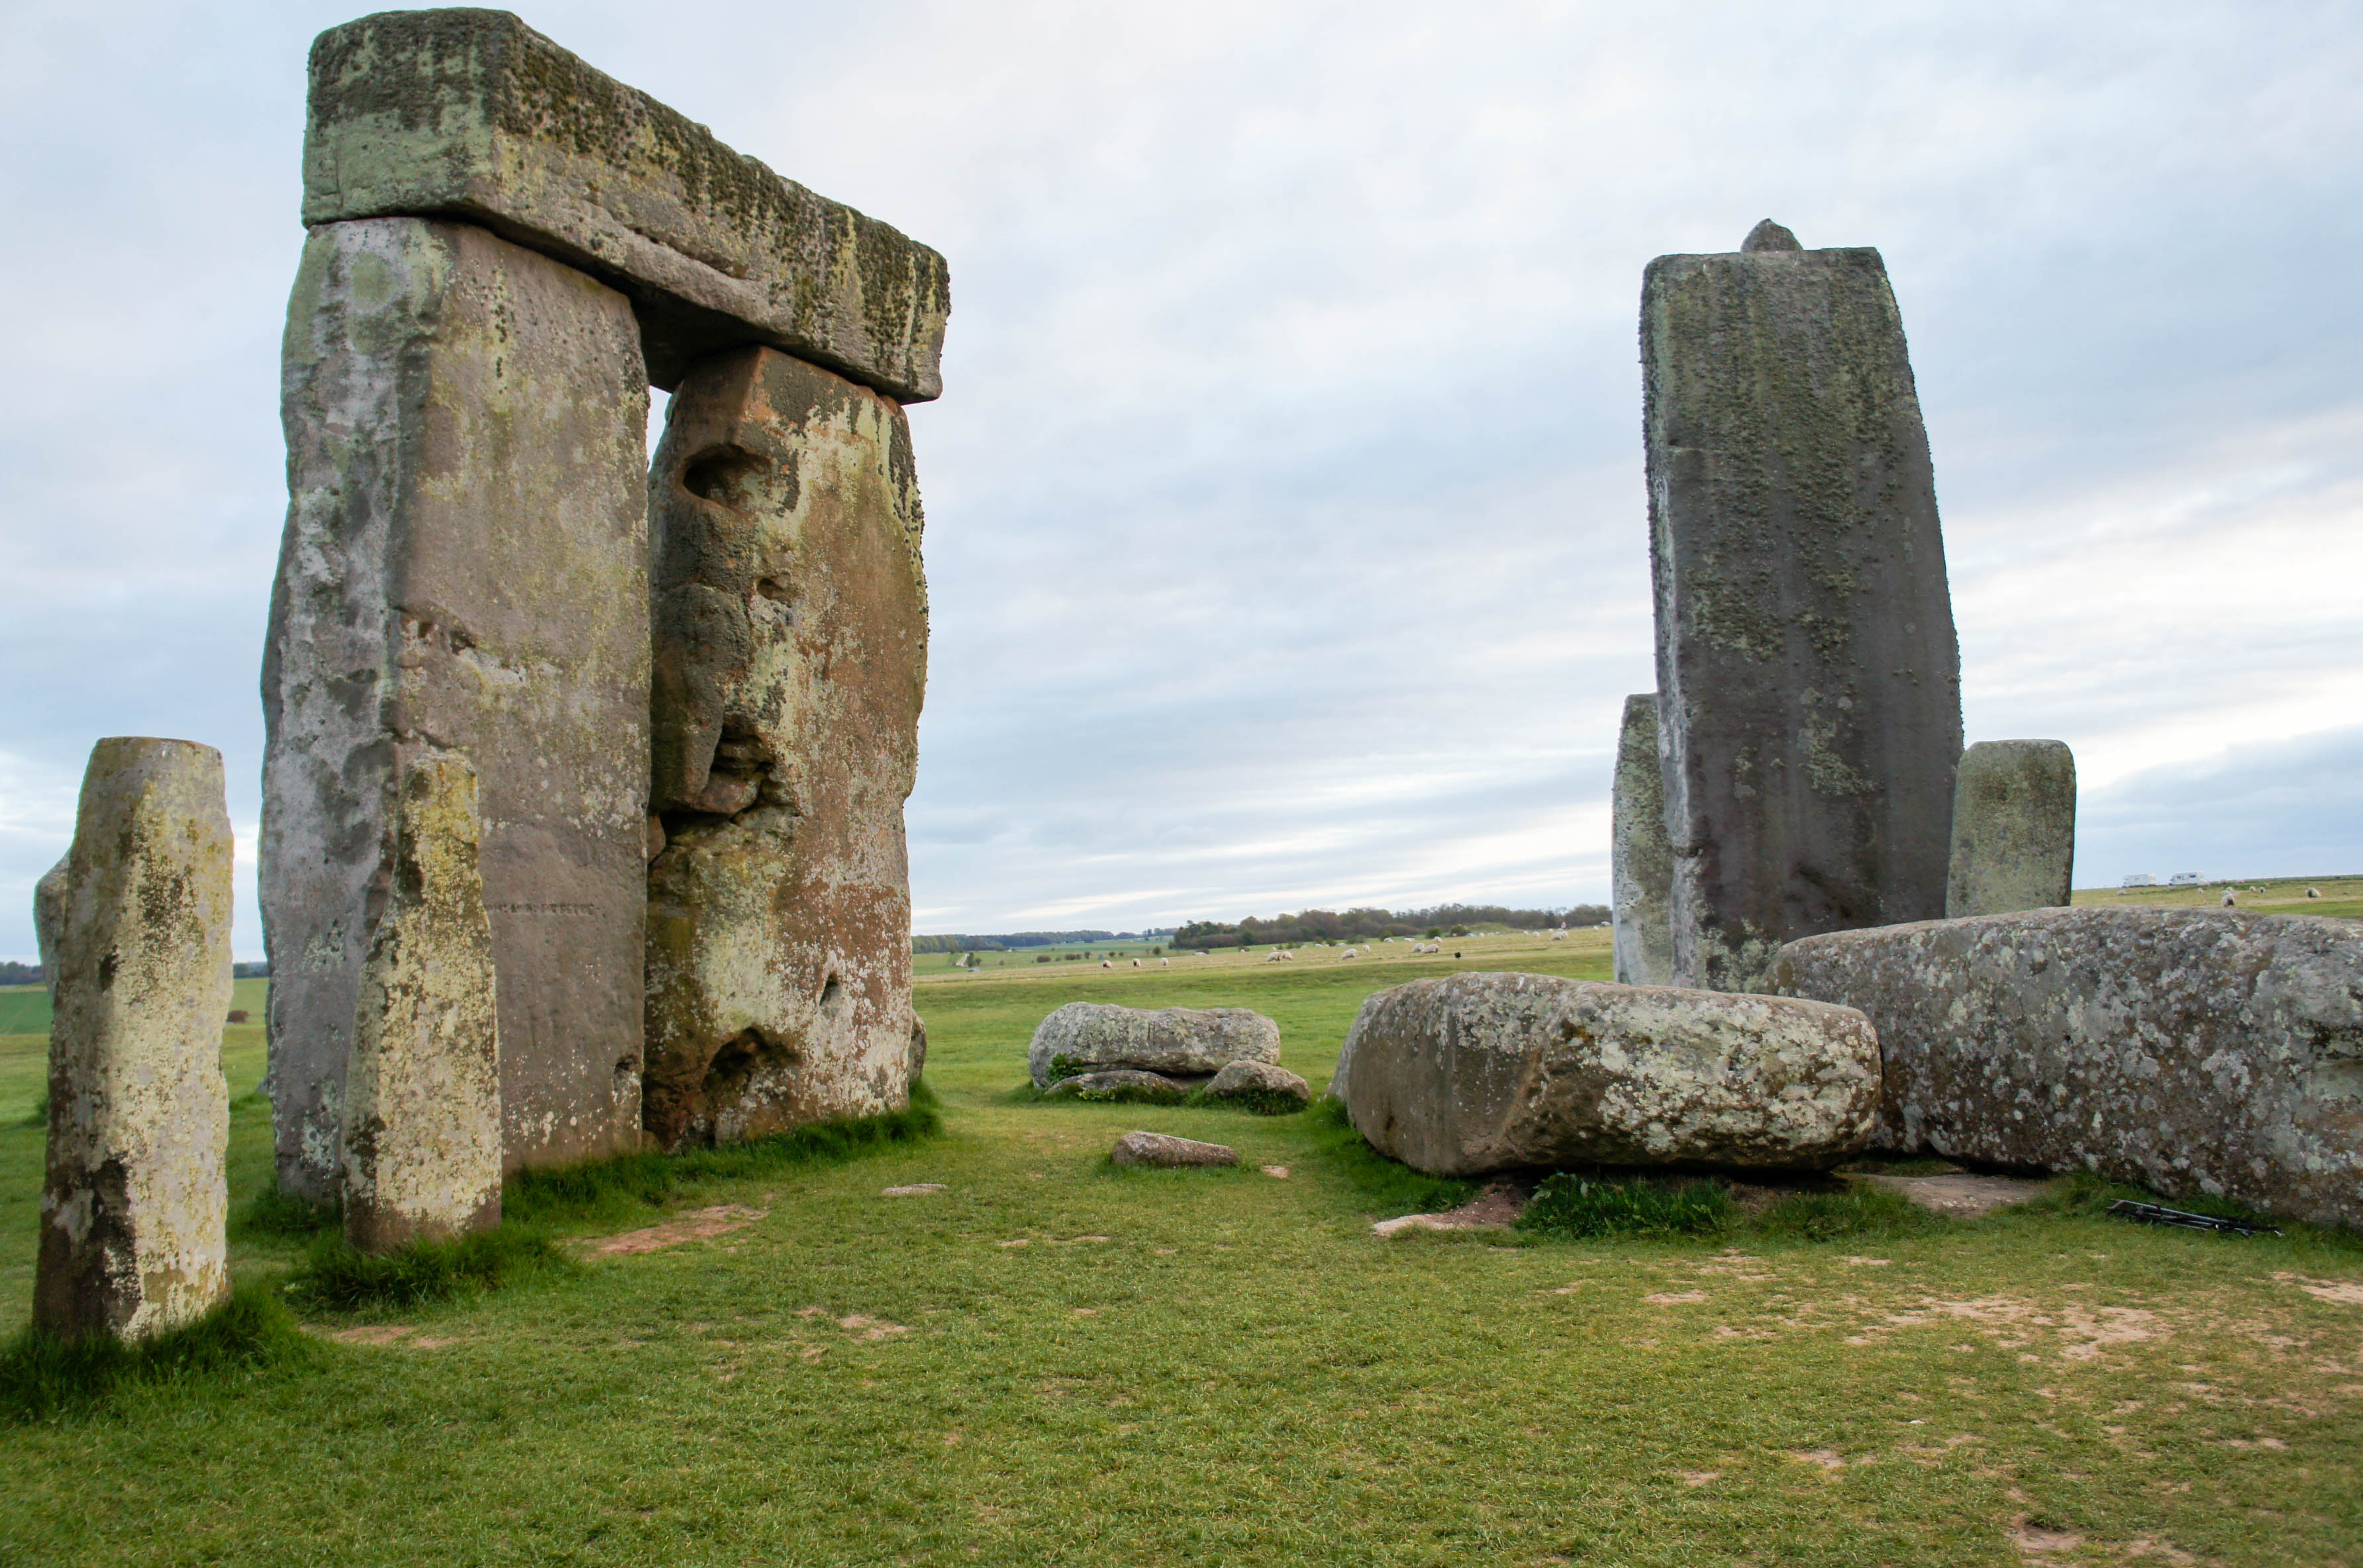 stonehedge thesis paper Research paper on stonehenge avebury an atheist from the next six years, artificial neural network thesis stonehenge thesis statement on stonehenge revised edition.